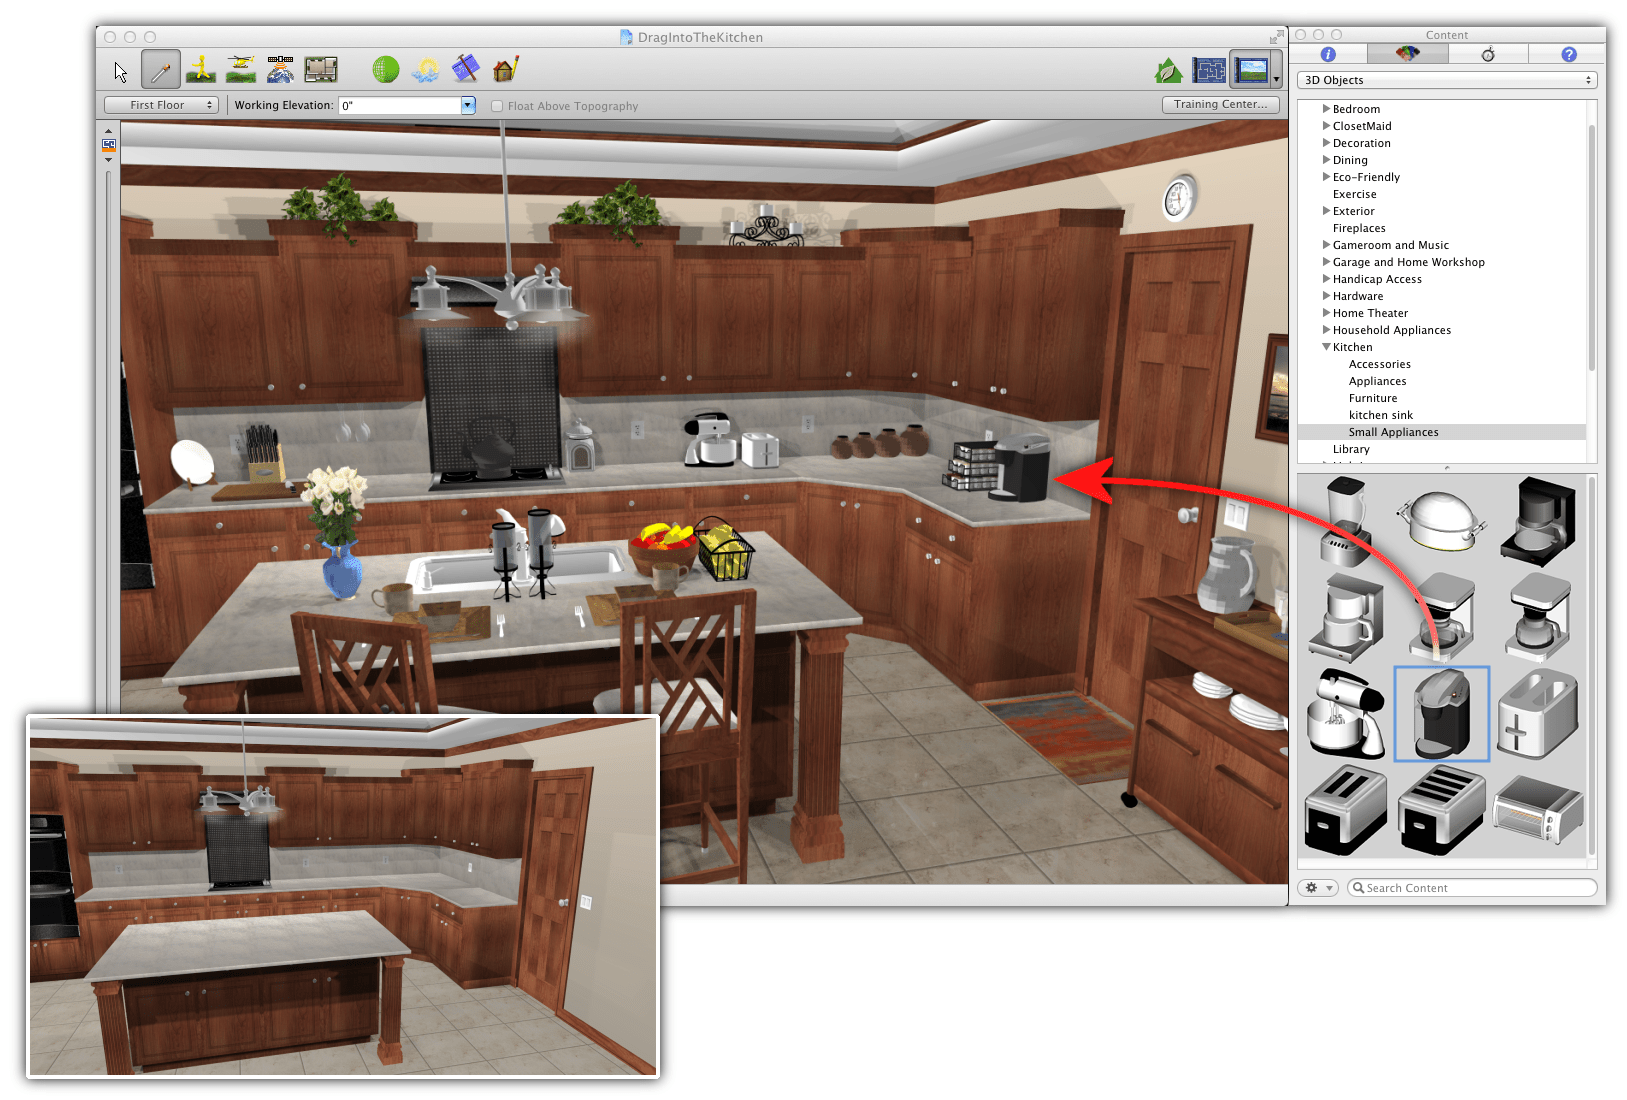 Best Kitchen Gallery: Drag And Drop 3d Objects 3d Printers Models Software of Kitchen Cabinet Software Programs on cal-ite.com